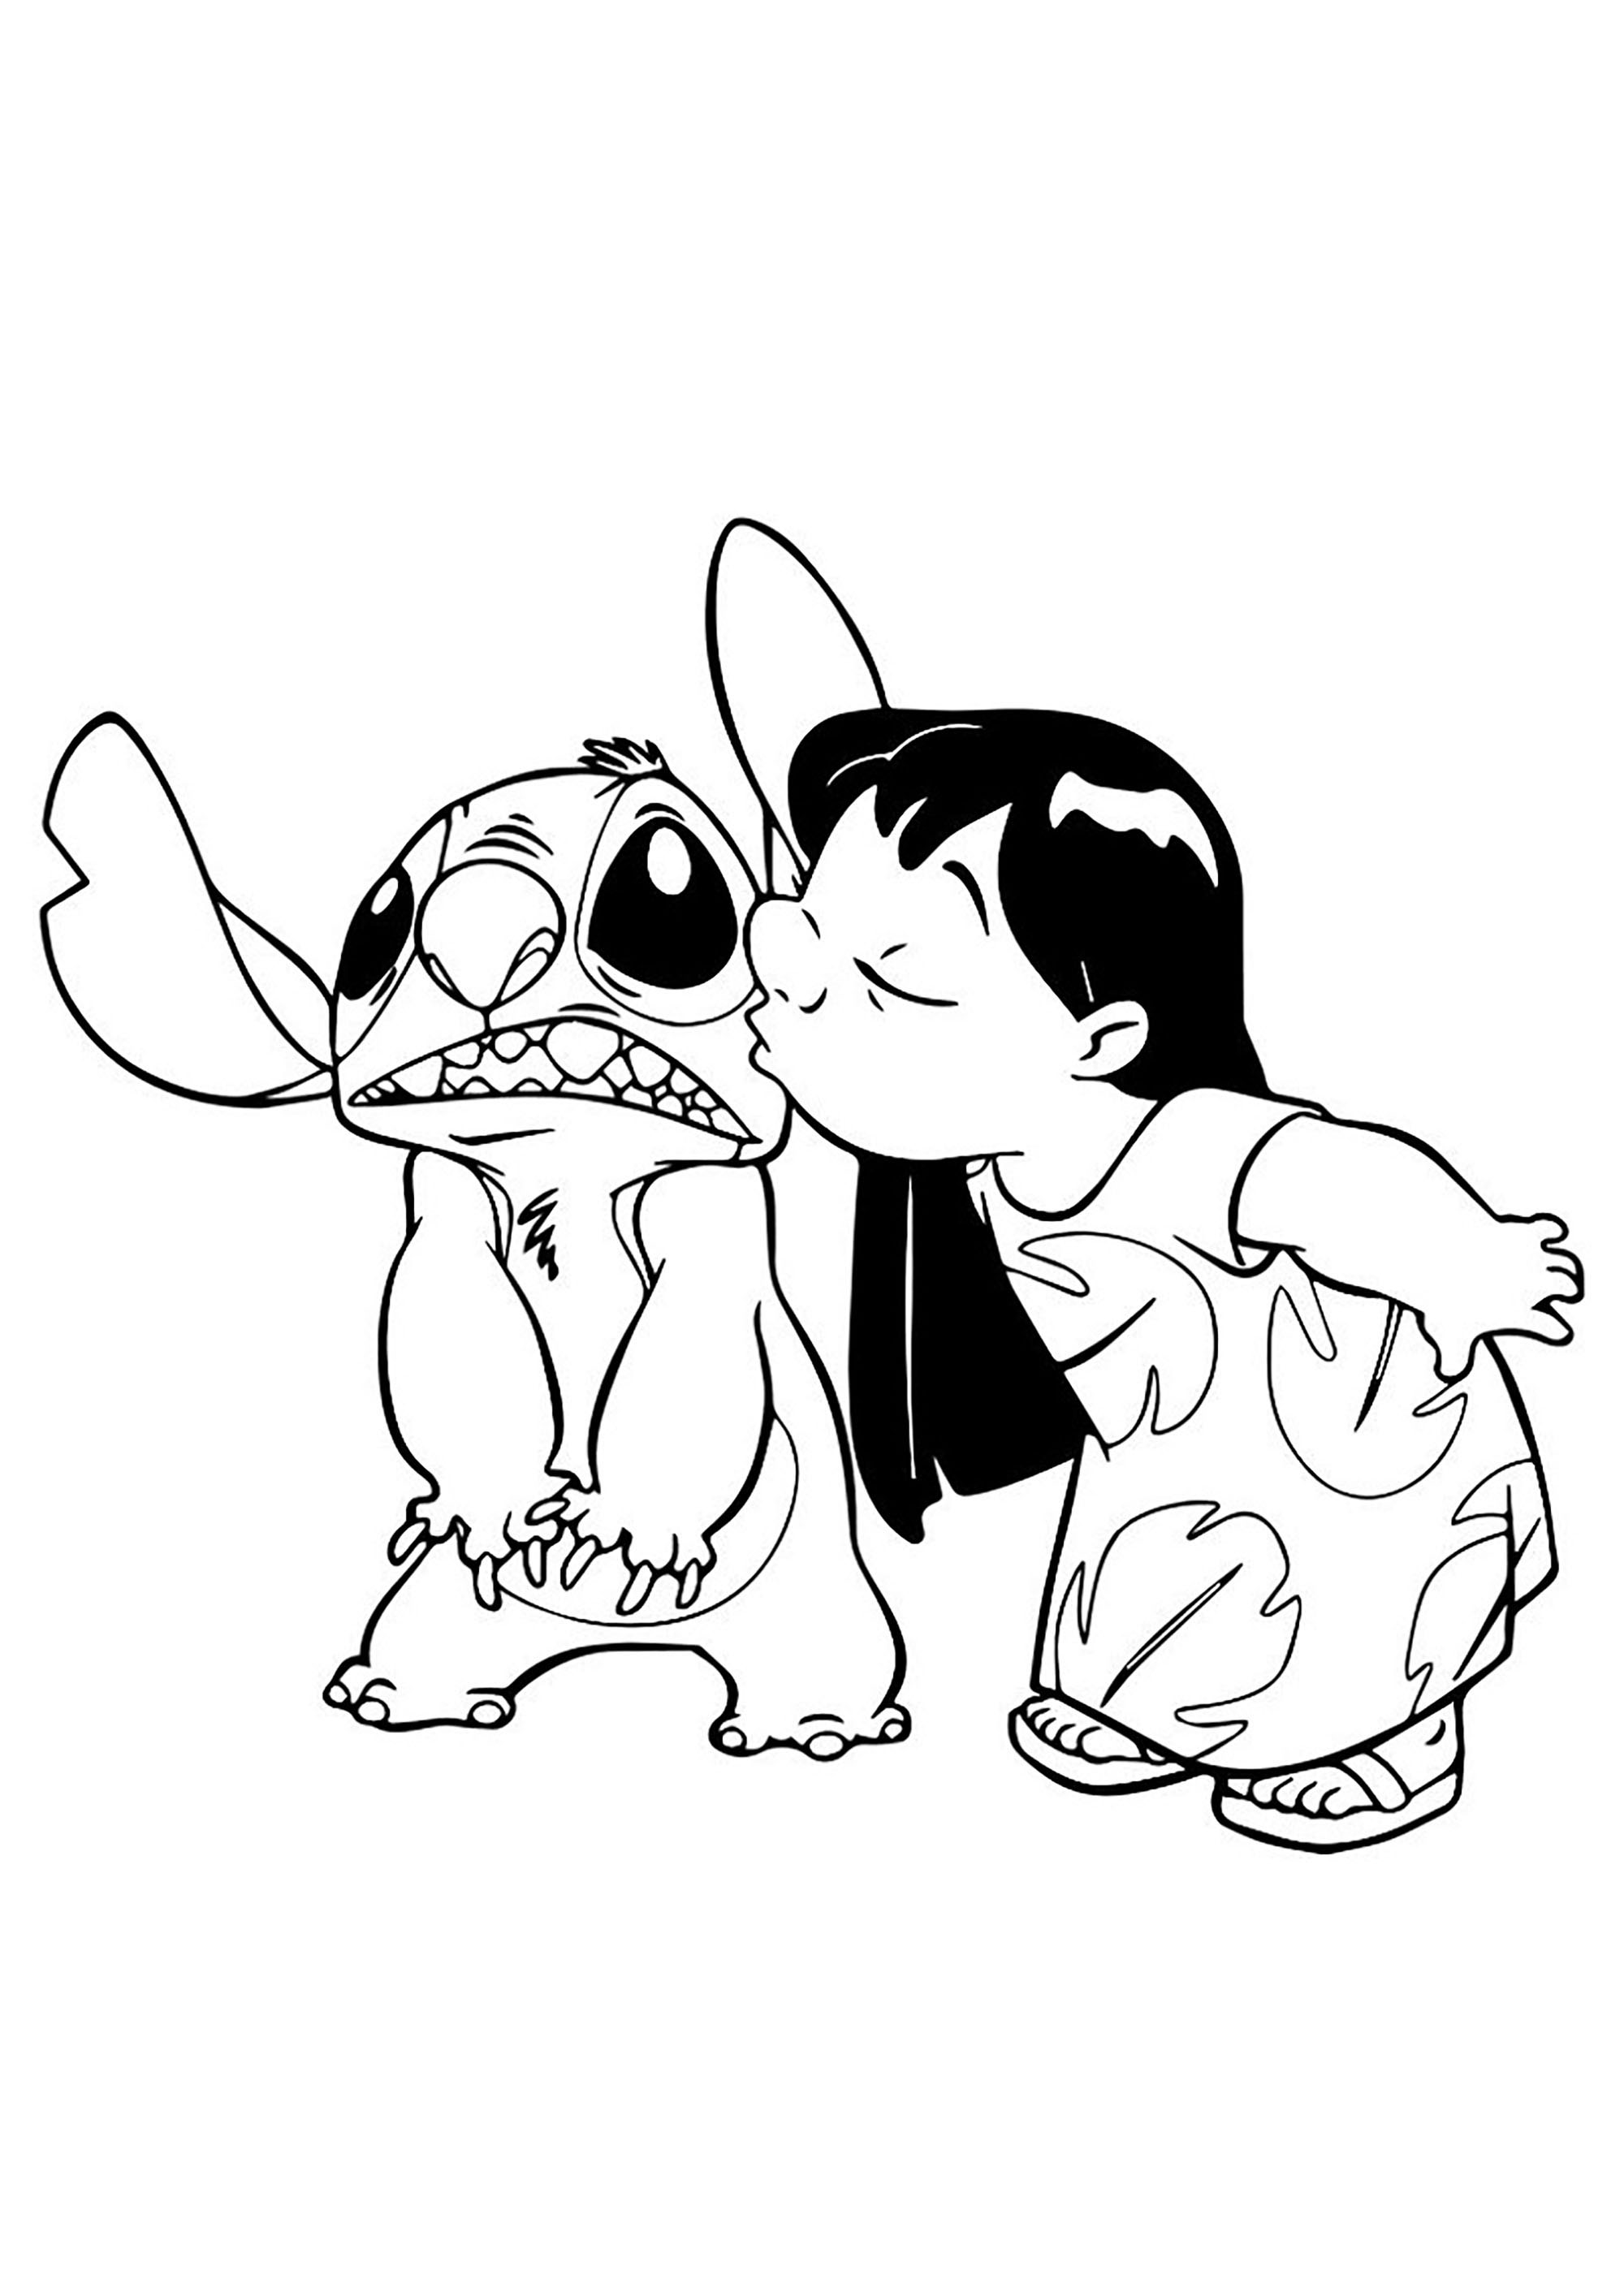 Free Lilo And Stich coloring page to print and color, for kids